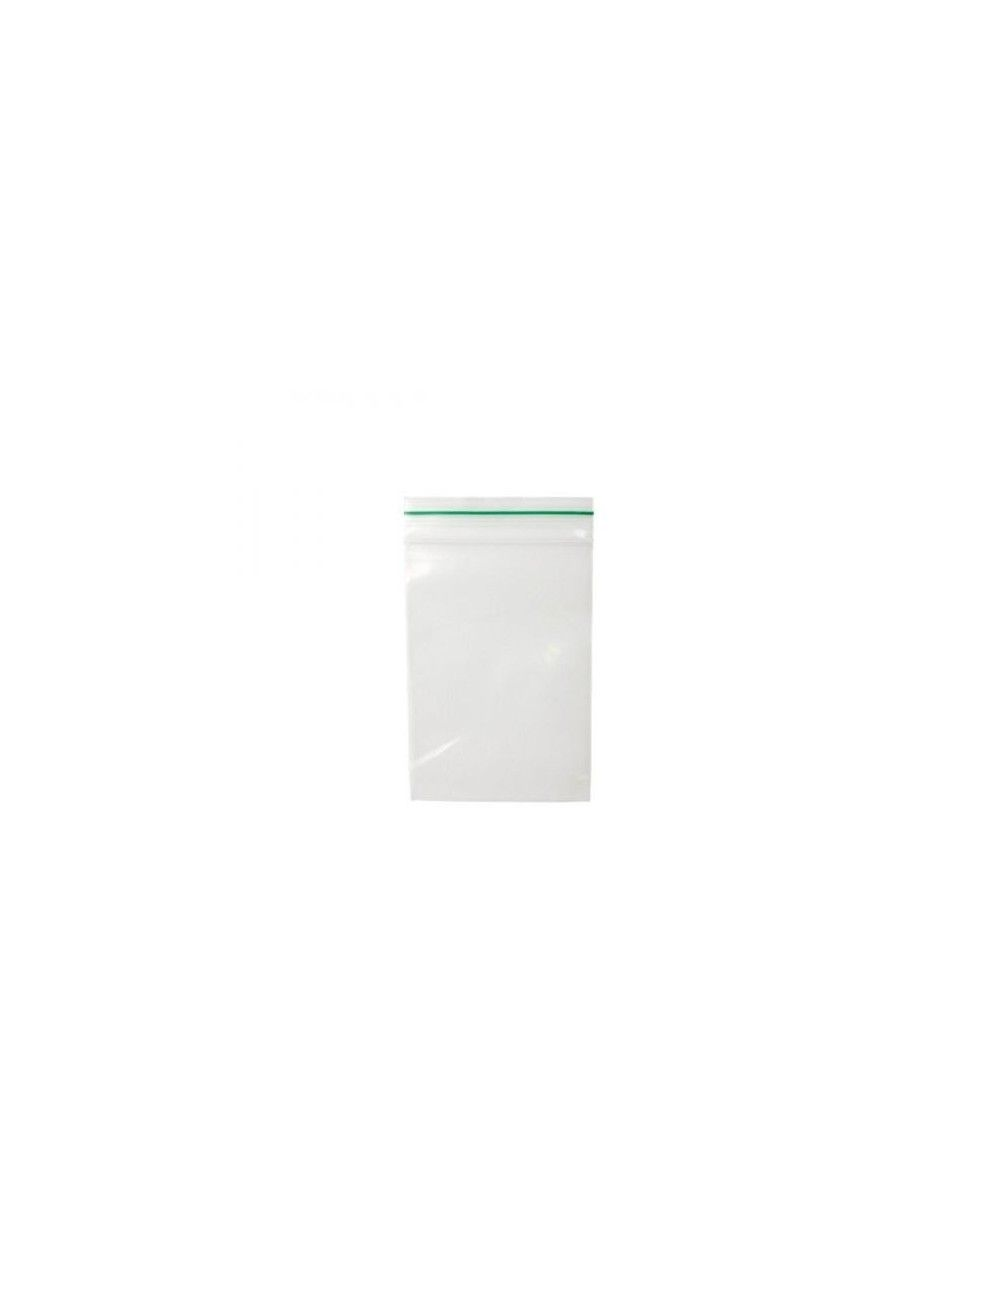 ZipLock Baggies Green Line